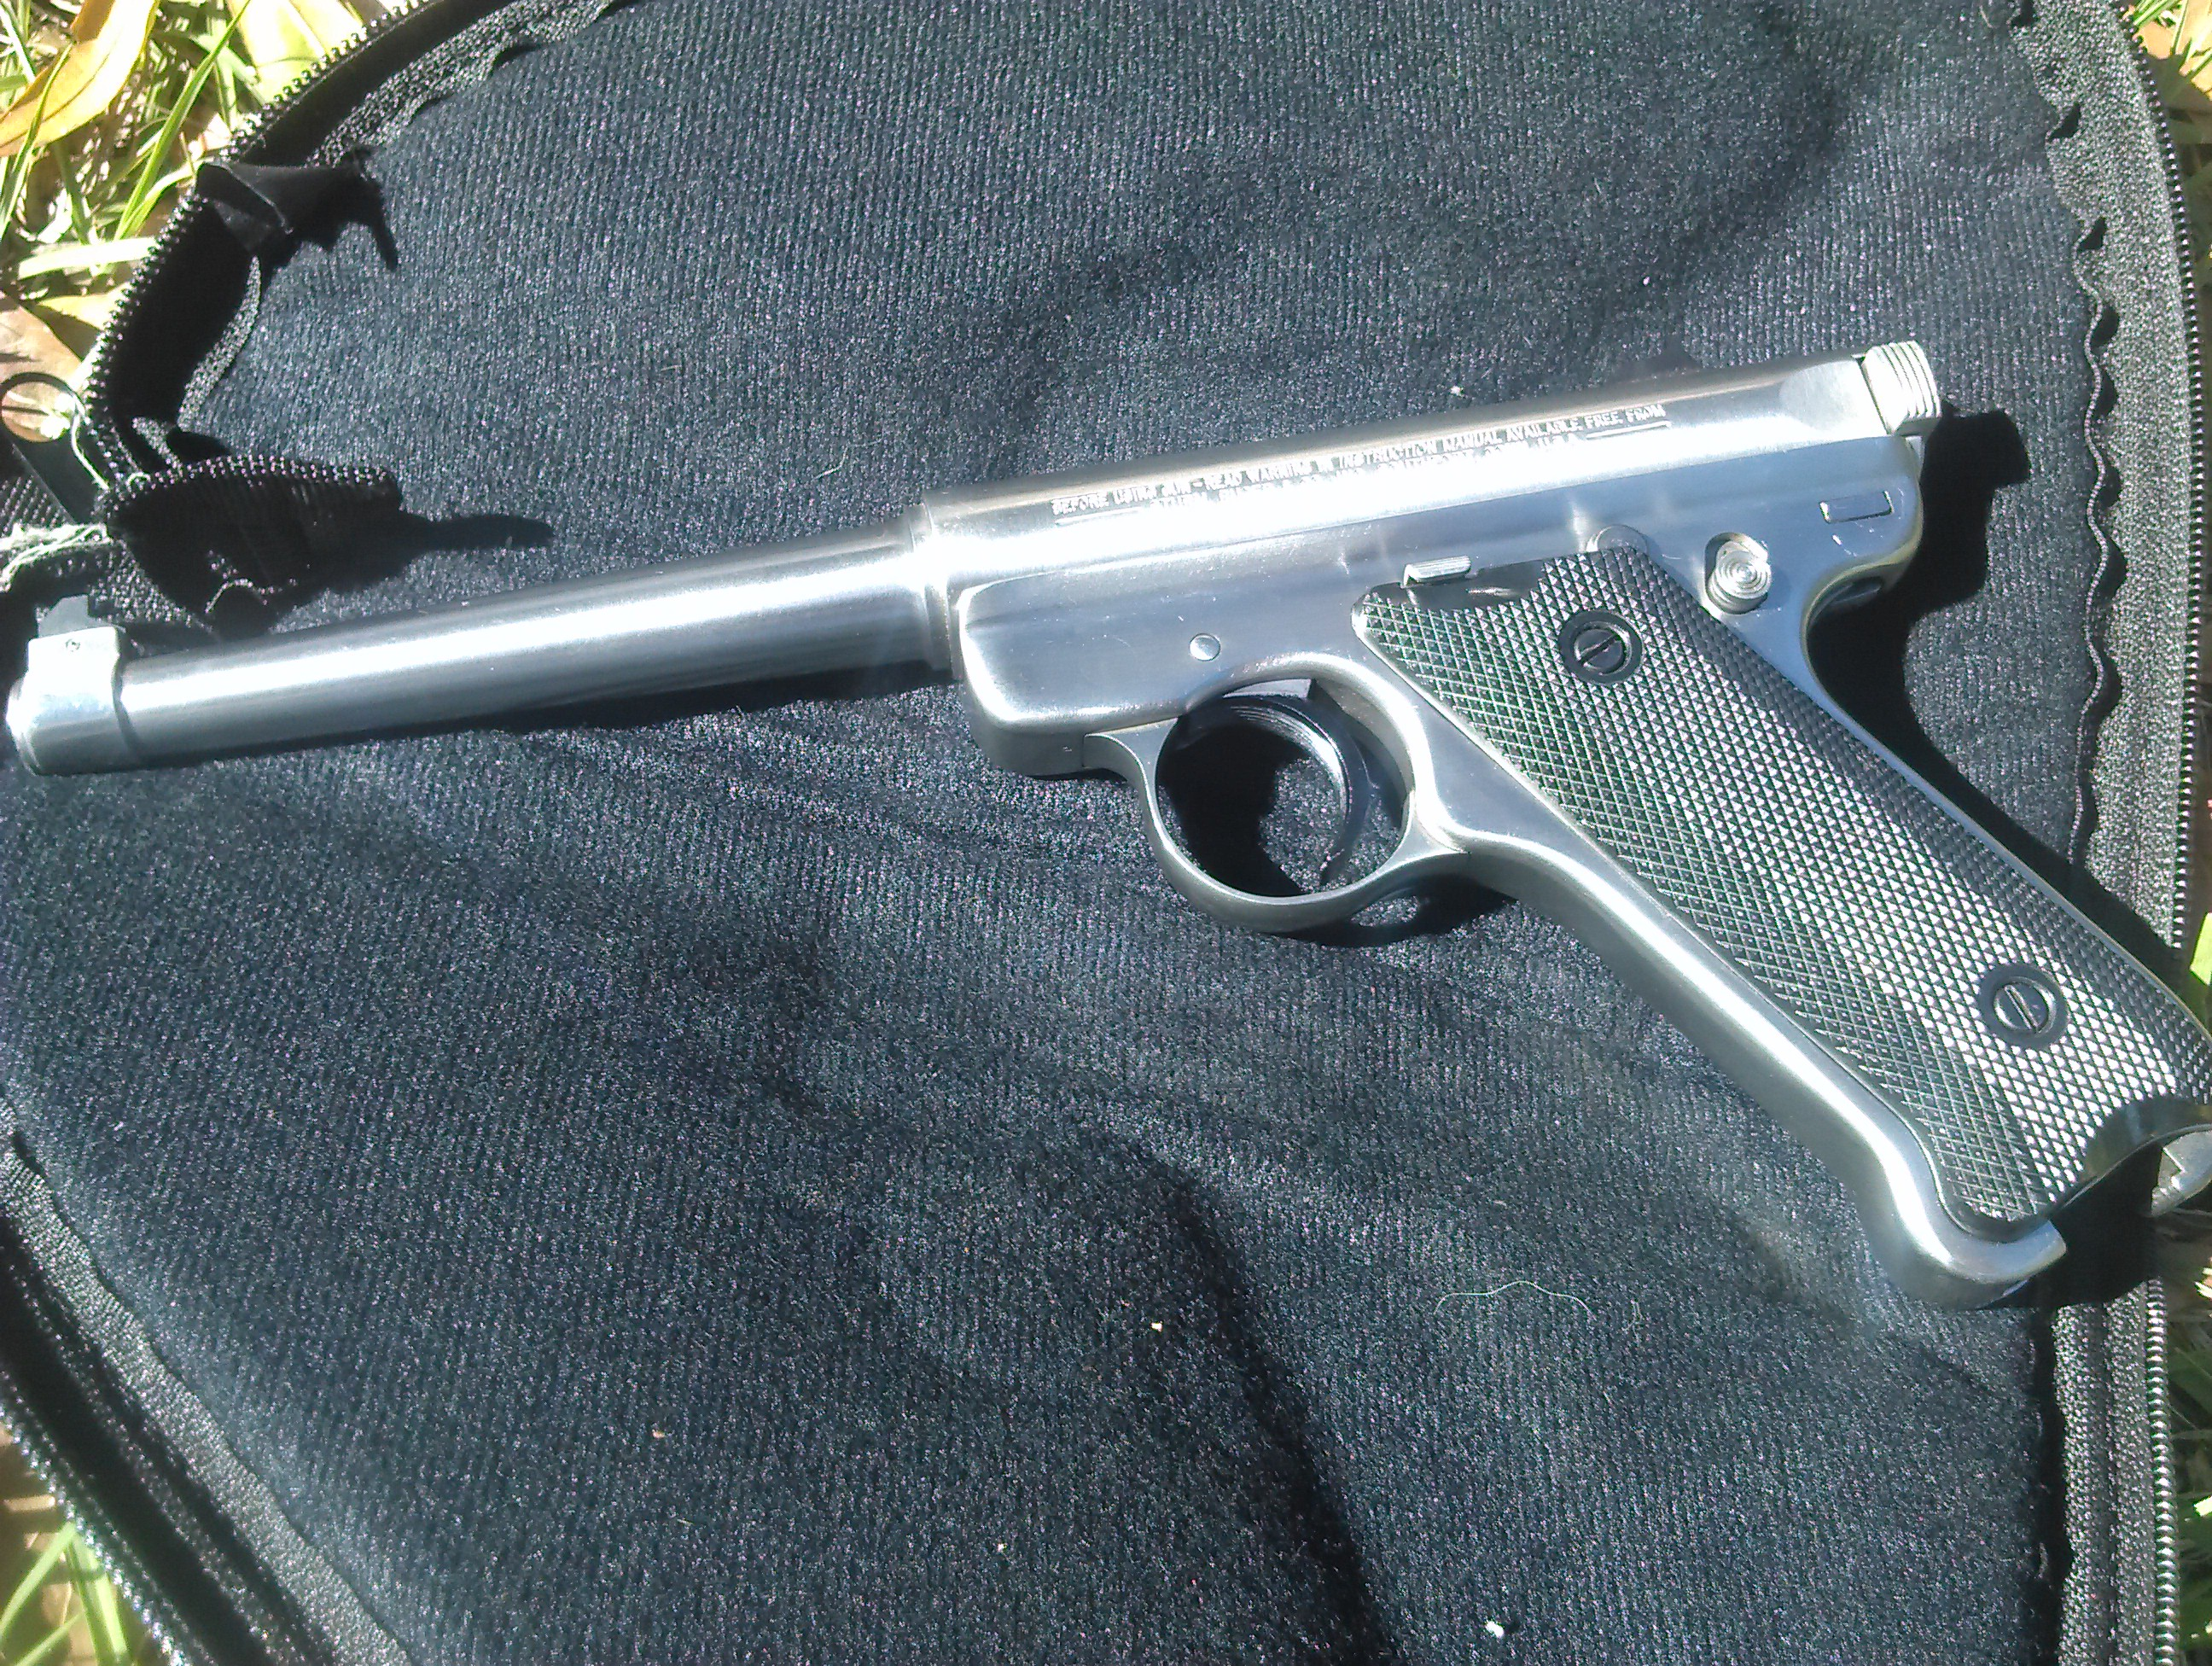 The Ruger collection I'm building-mark.jpg